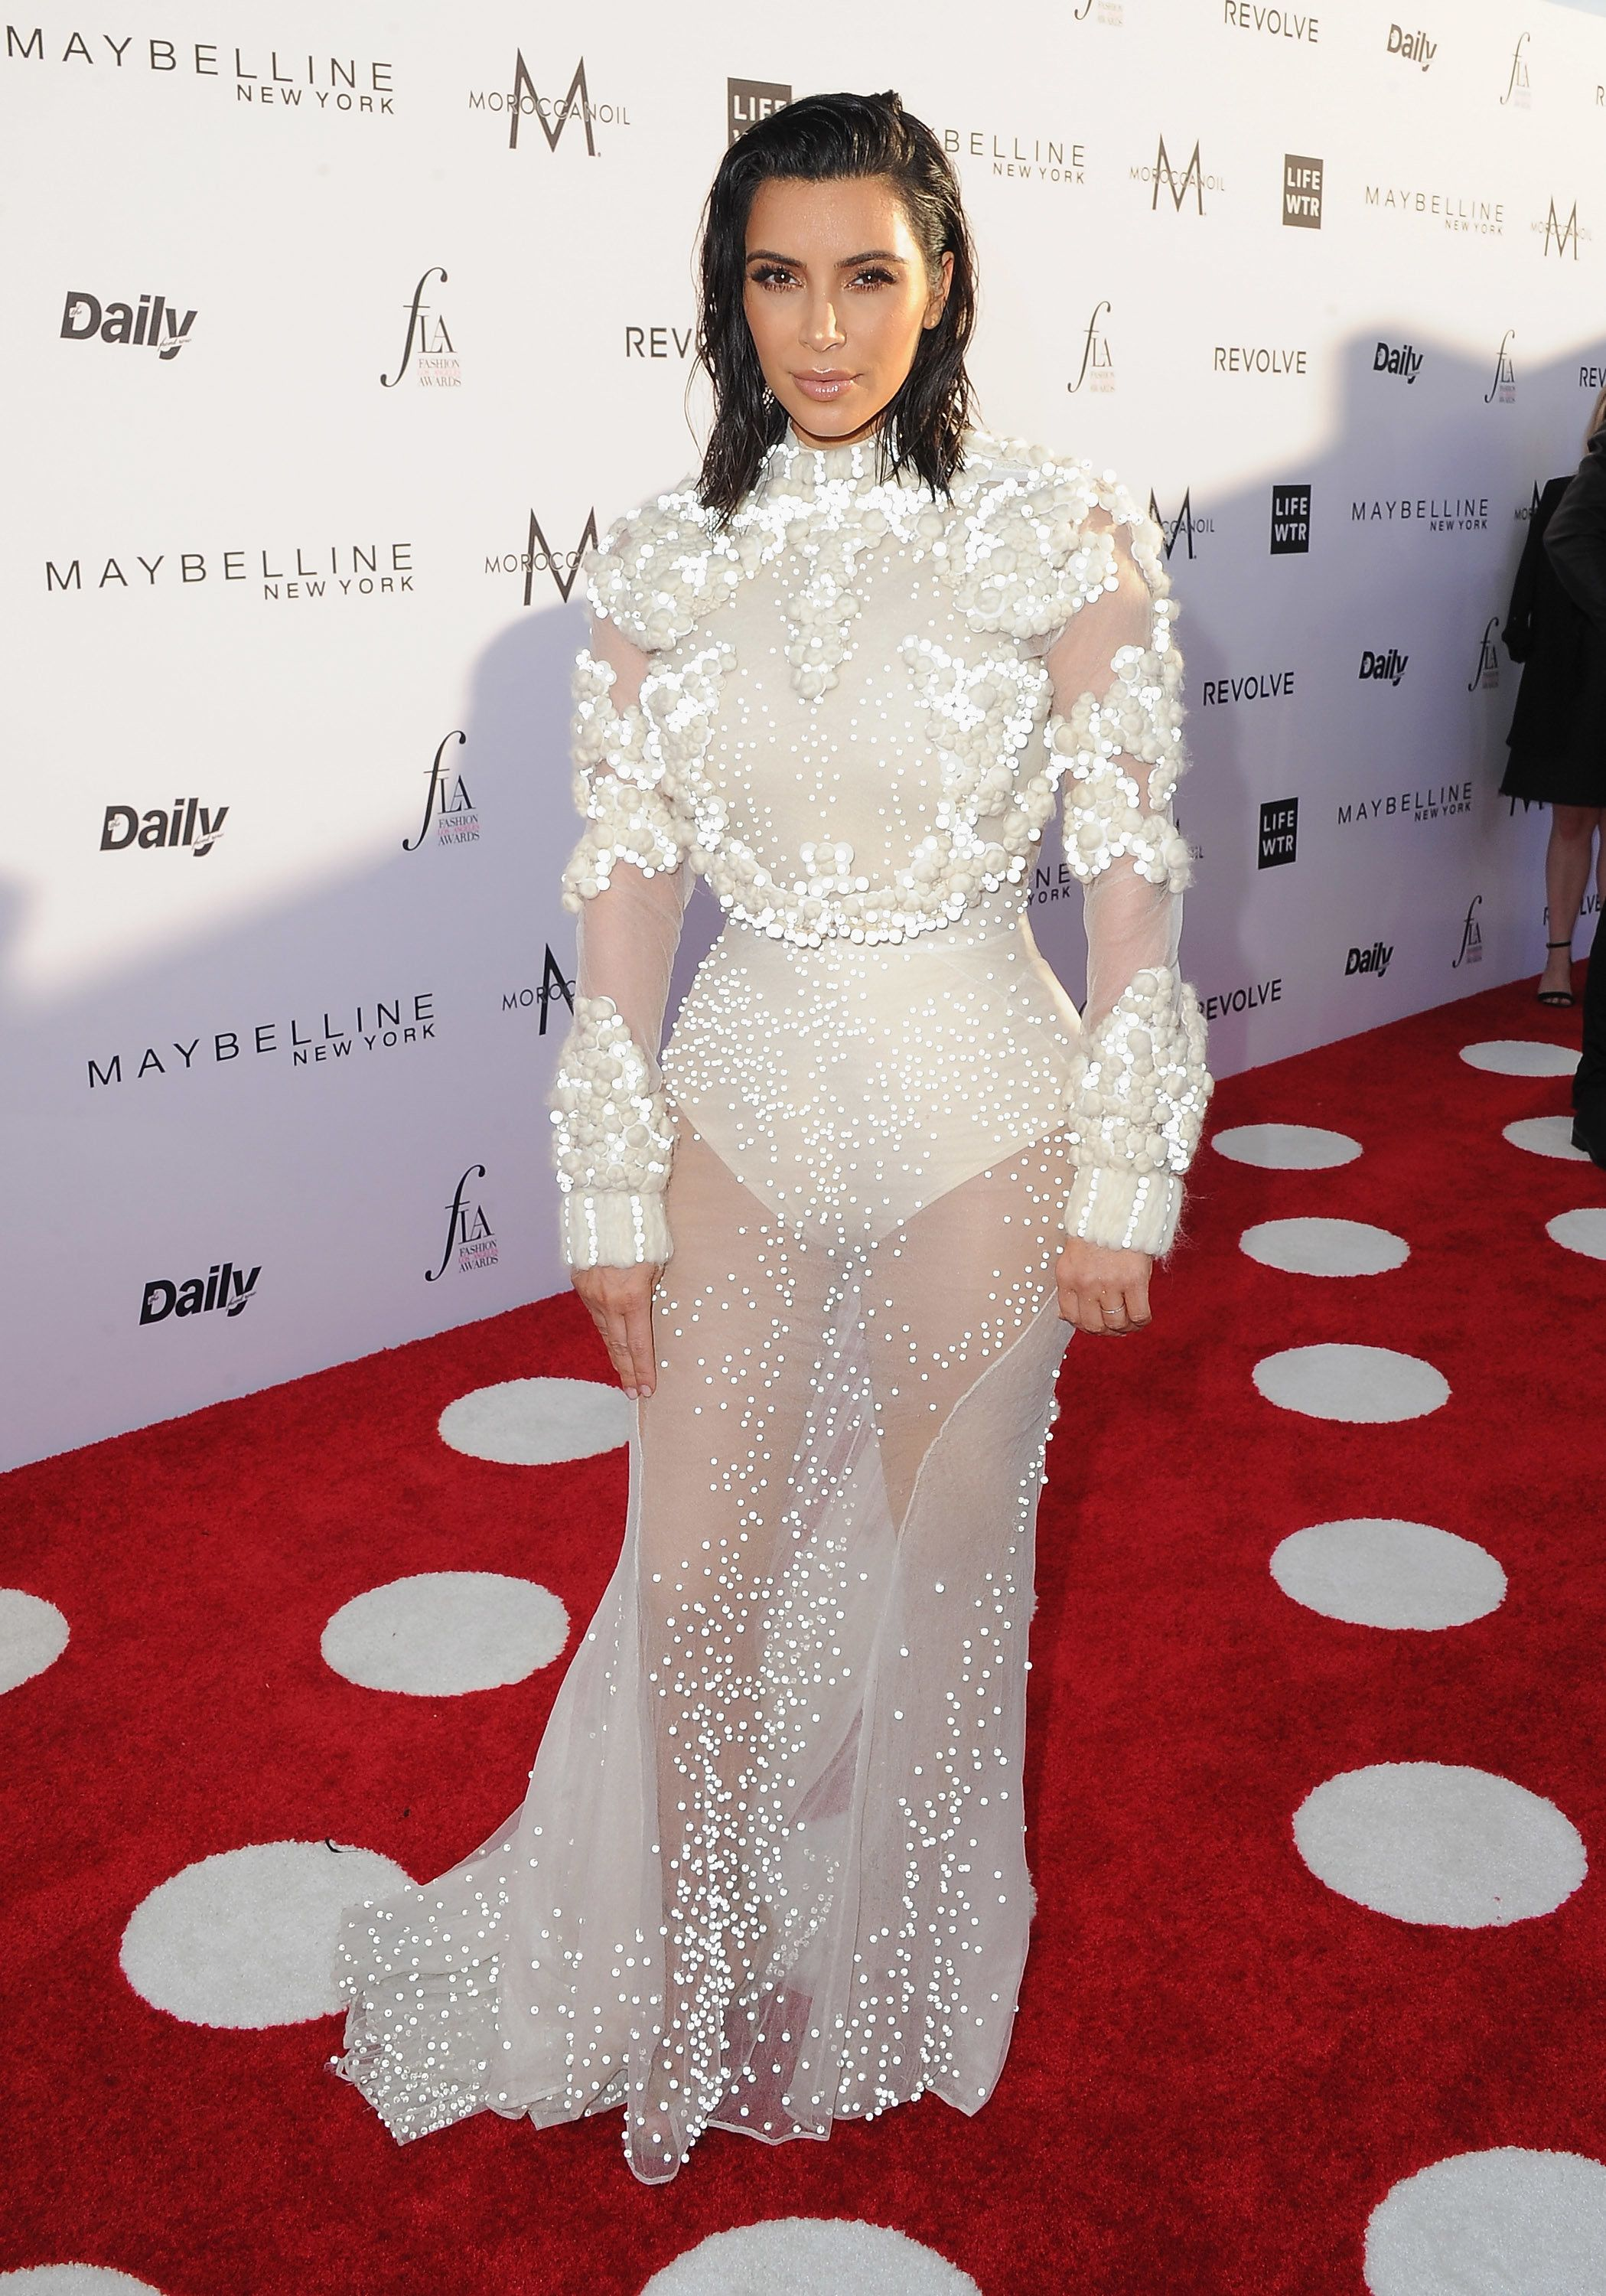 WEST HOLLYWOOD, CA - APRIL 02:  Kim Kardashian arrives at the Daily Front Row's 3rd Annual Fashion Los Angeles Awards at the Sunset Tower Hotel on April 2, 2017 in West Hollywood, California.  (Photo by Jon Kopaloff/FilmMagic)